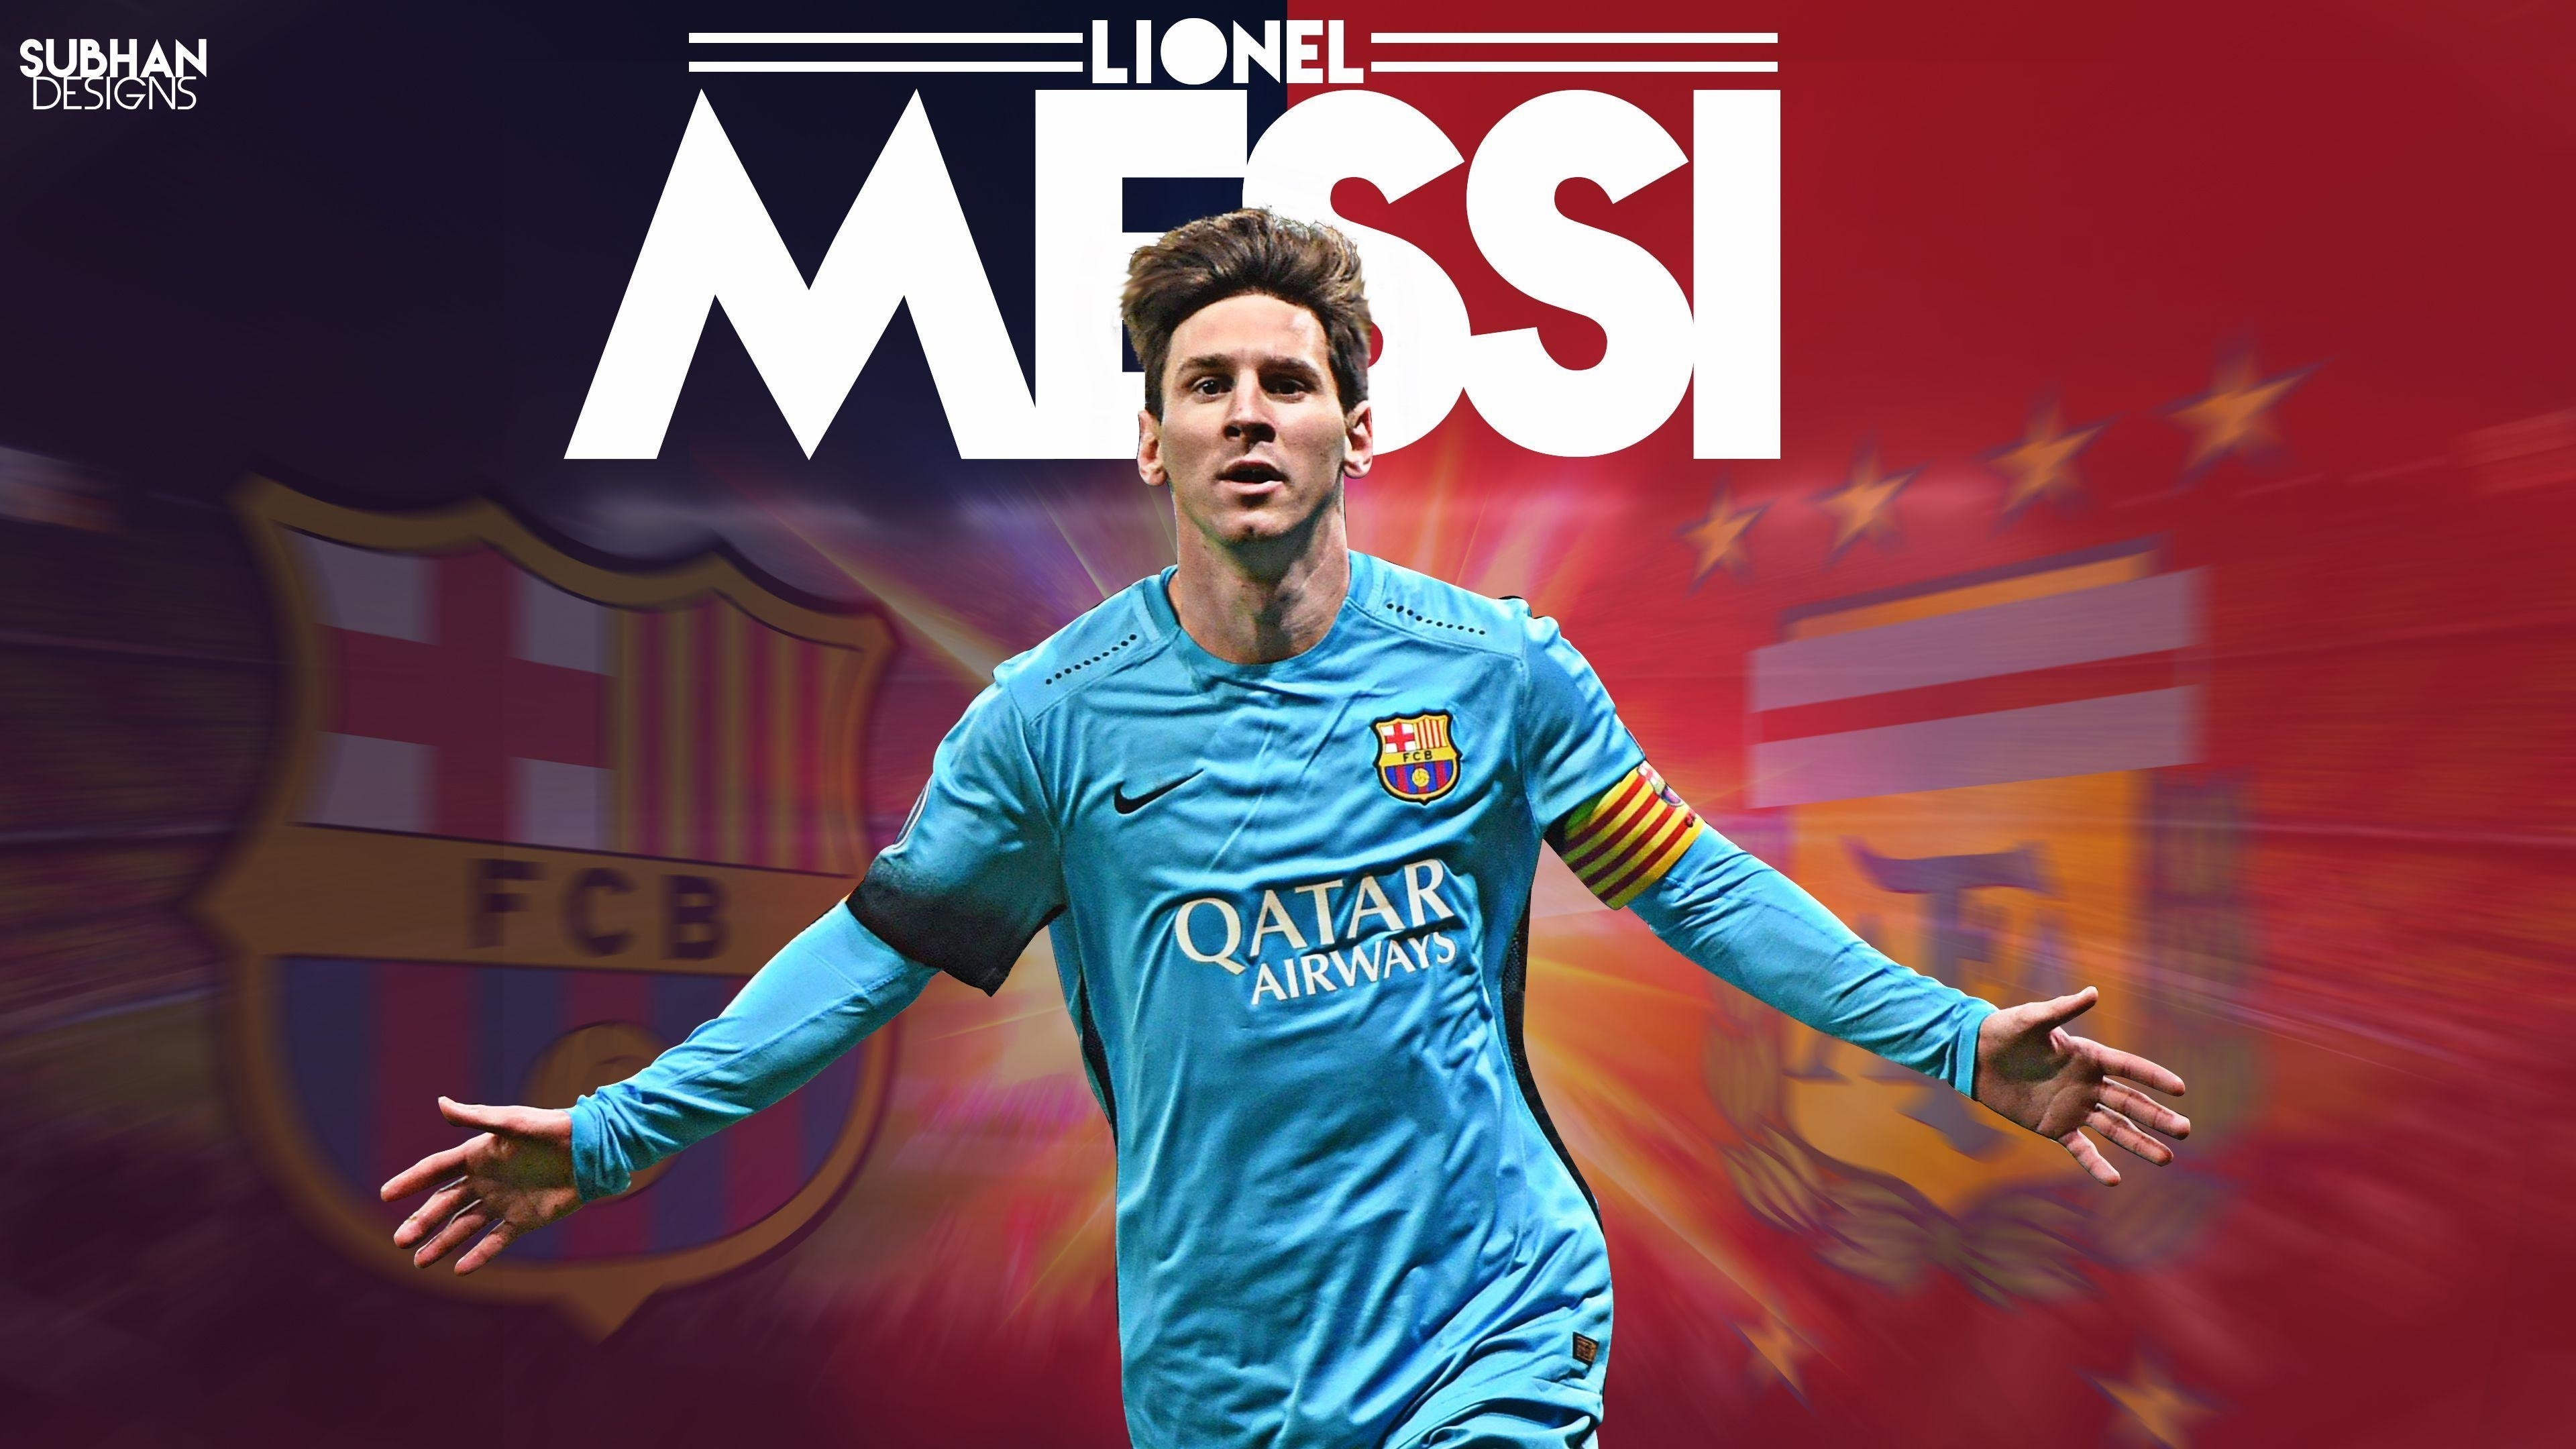 lionel messi wallpapers 2016 - wallpaper cave